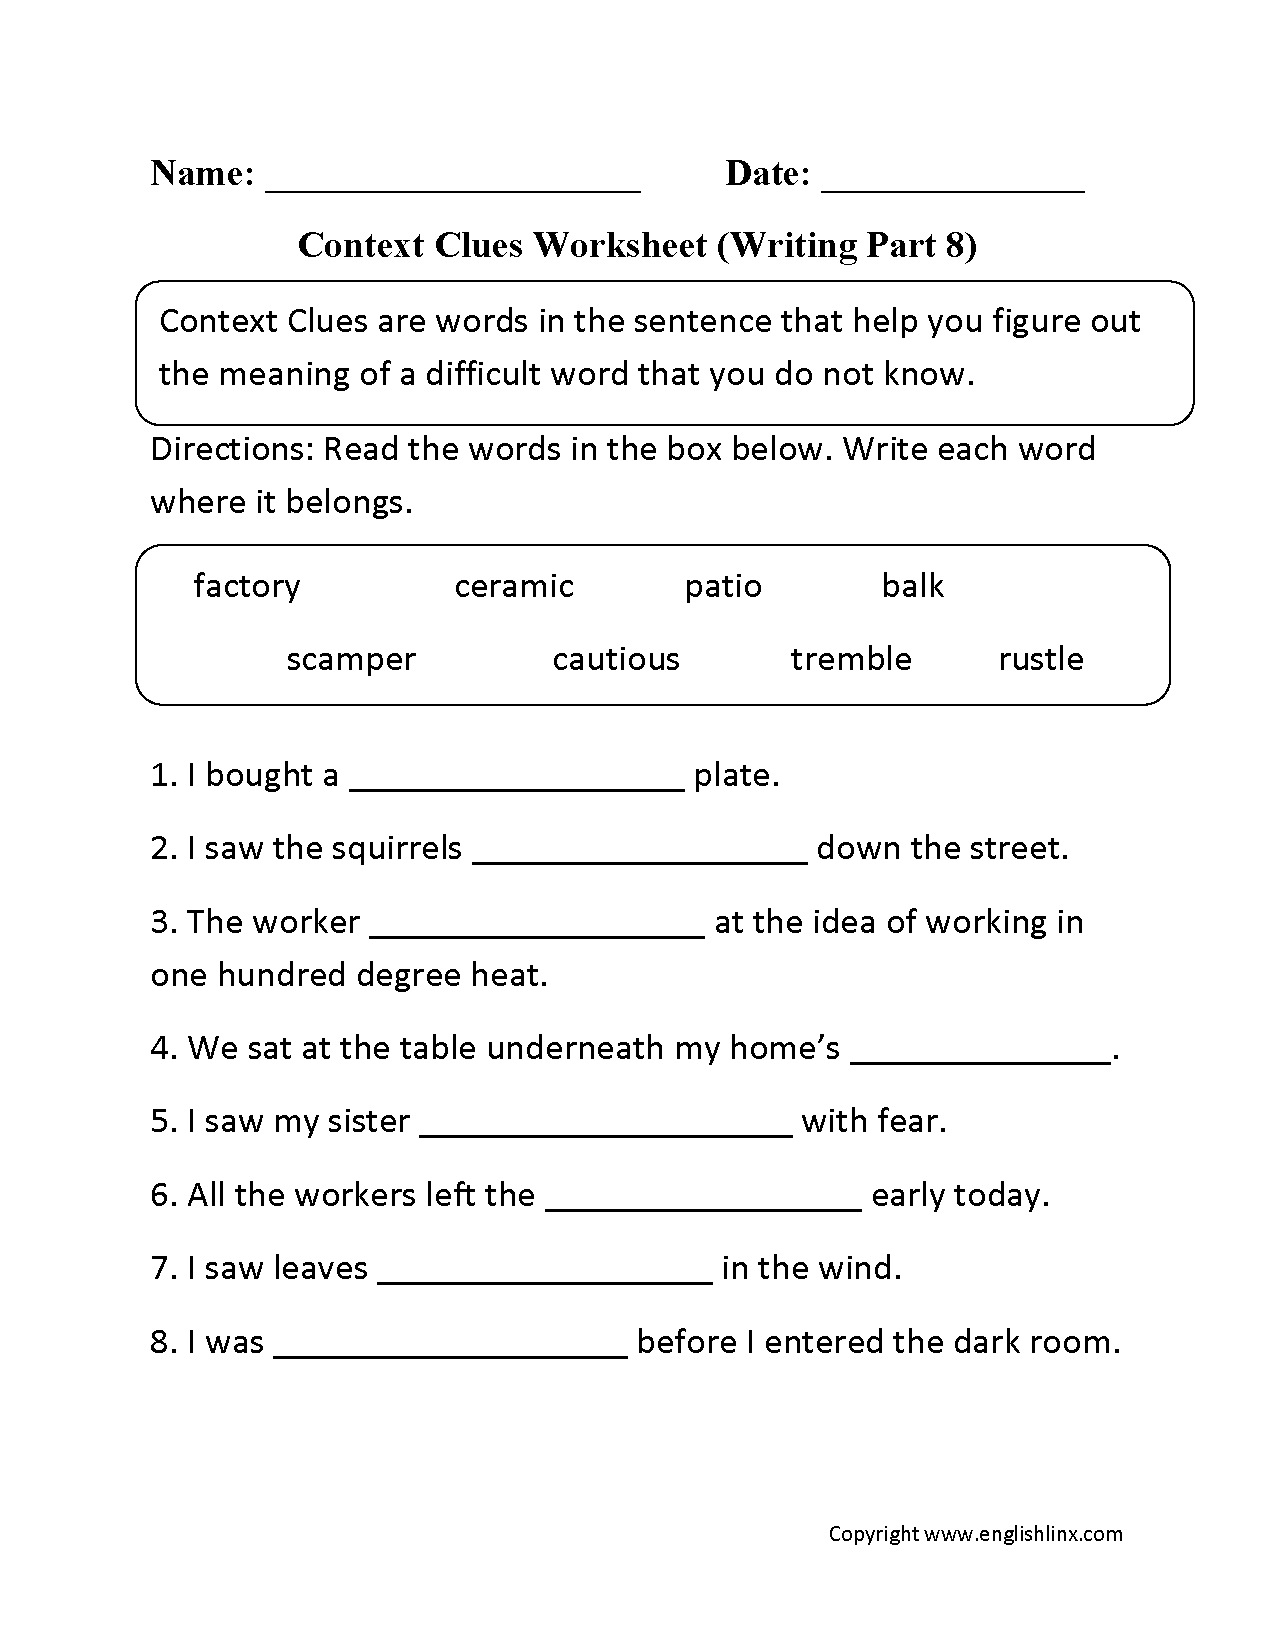 Context Clues Warm Ups Printable Worksheets From